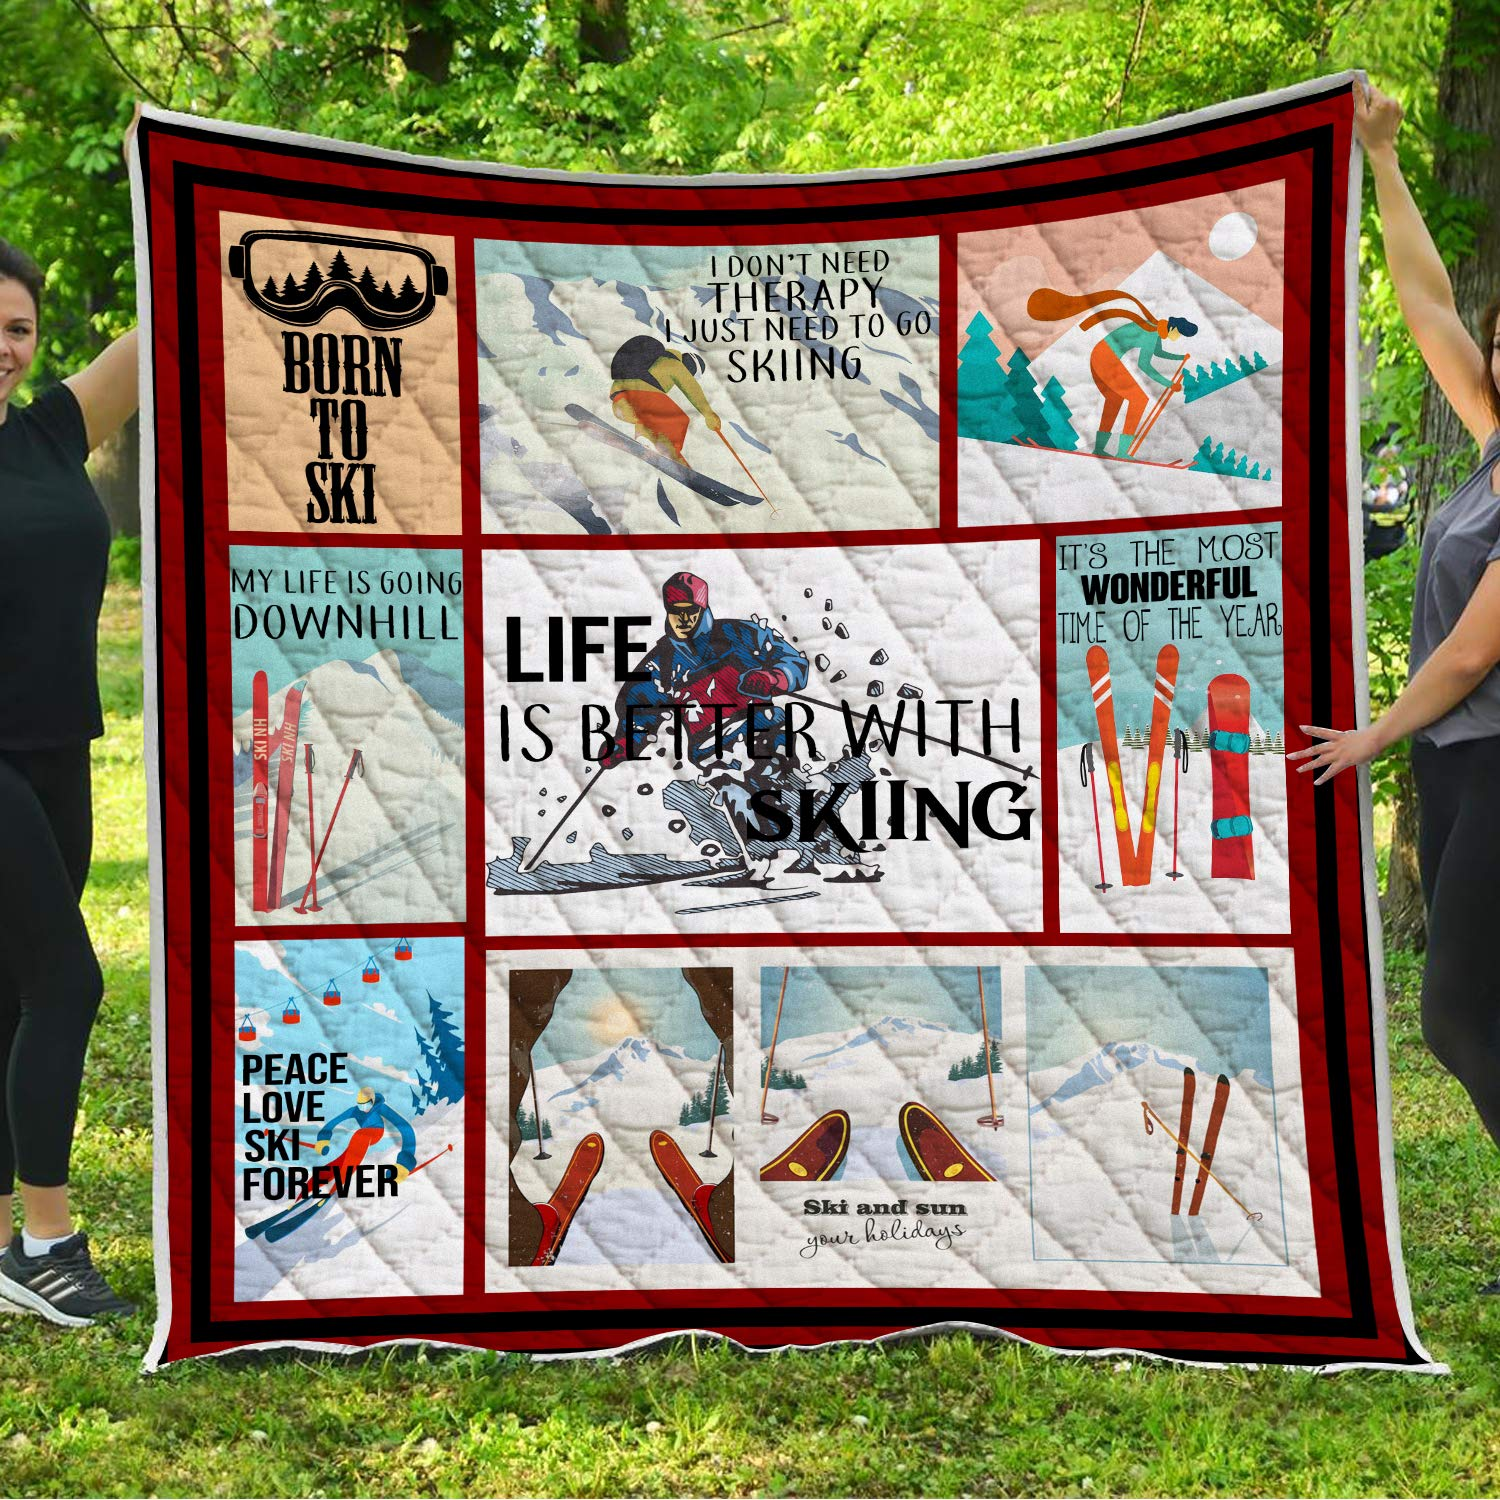 Skiing Quilt Pattern Blanket Comforters with Reversible Cotton King Queen Full Twin Size Quilted Birthday Ski Gifts for Skiers Men Women Dad Mom Kids Children Husband Wife Boyfriend Girlfriend Girls